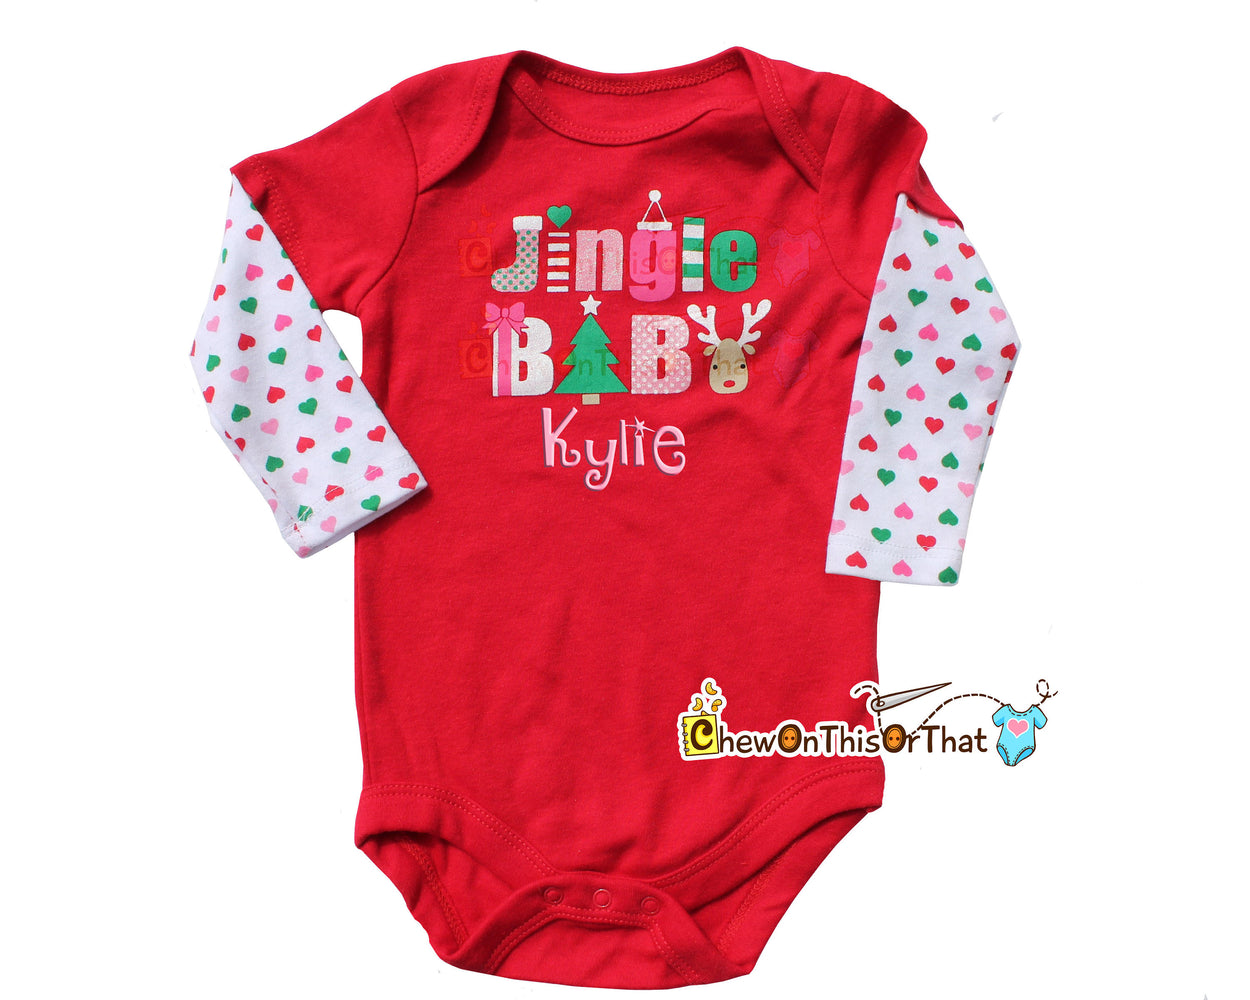 Jingle Baby Red and White Christmas Onesie Personalized with Baby's Name for Baby First Christmas, Long Sleeve Bodysuit, Top, Shirt - Chew On This Or That